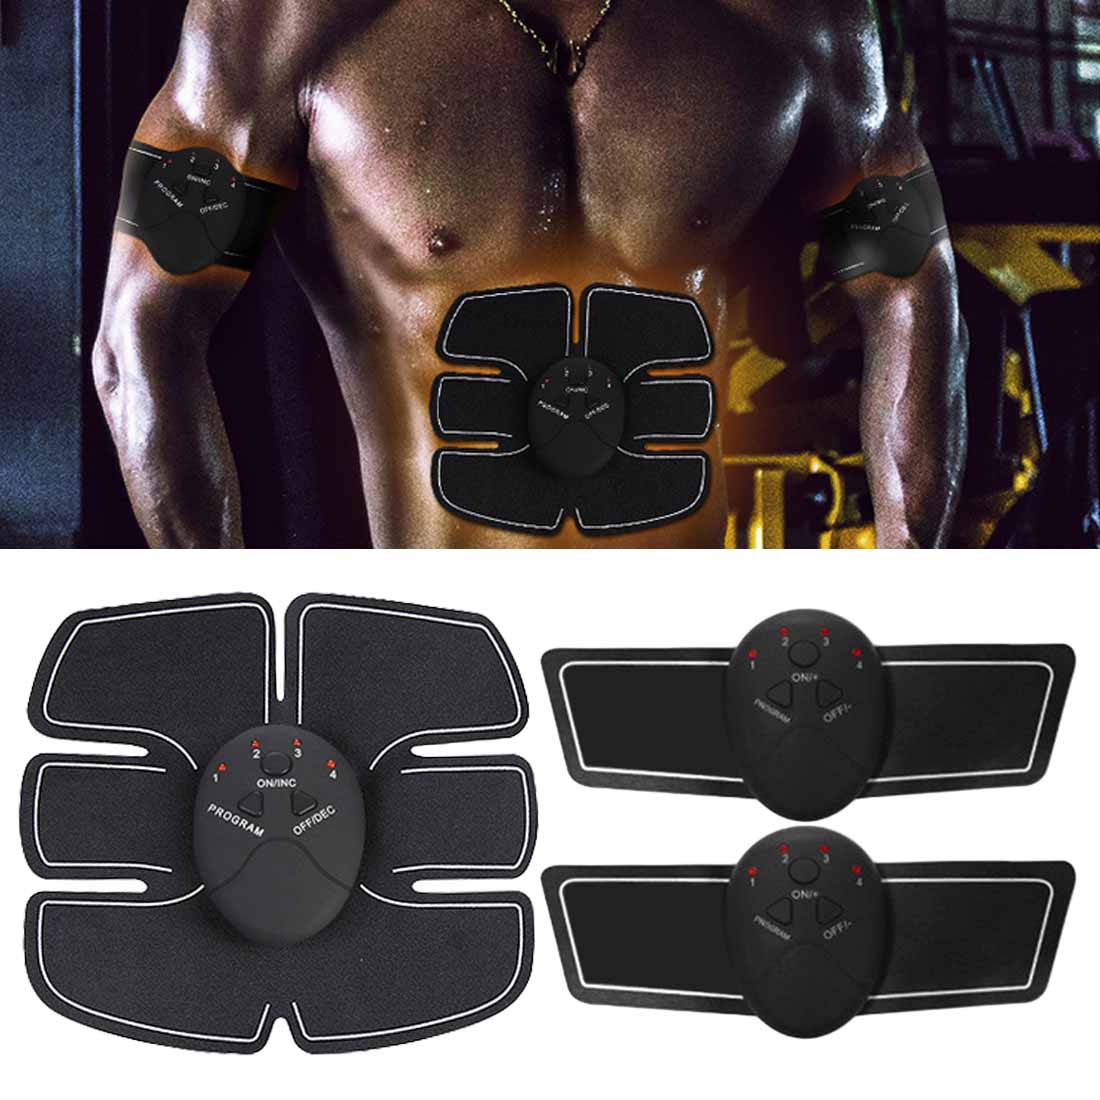 7Pcs/Set Pro EMS Stimulation Power Abdominal Muscle Trainer Fitness Vibration Plate Slim Body Loss Weight Massager